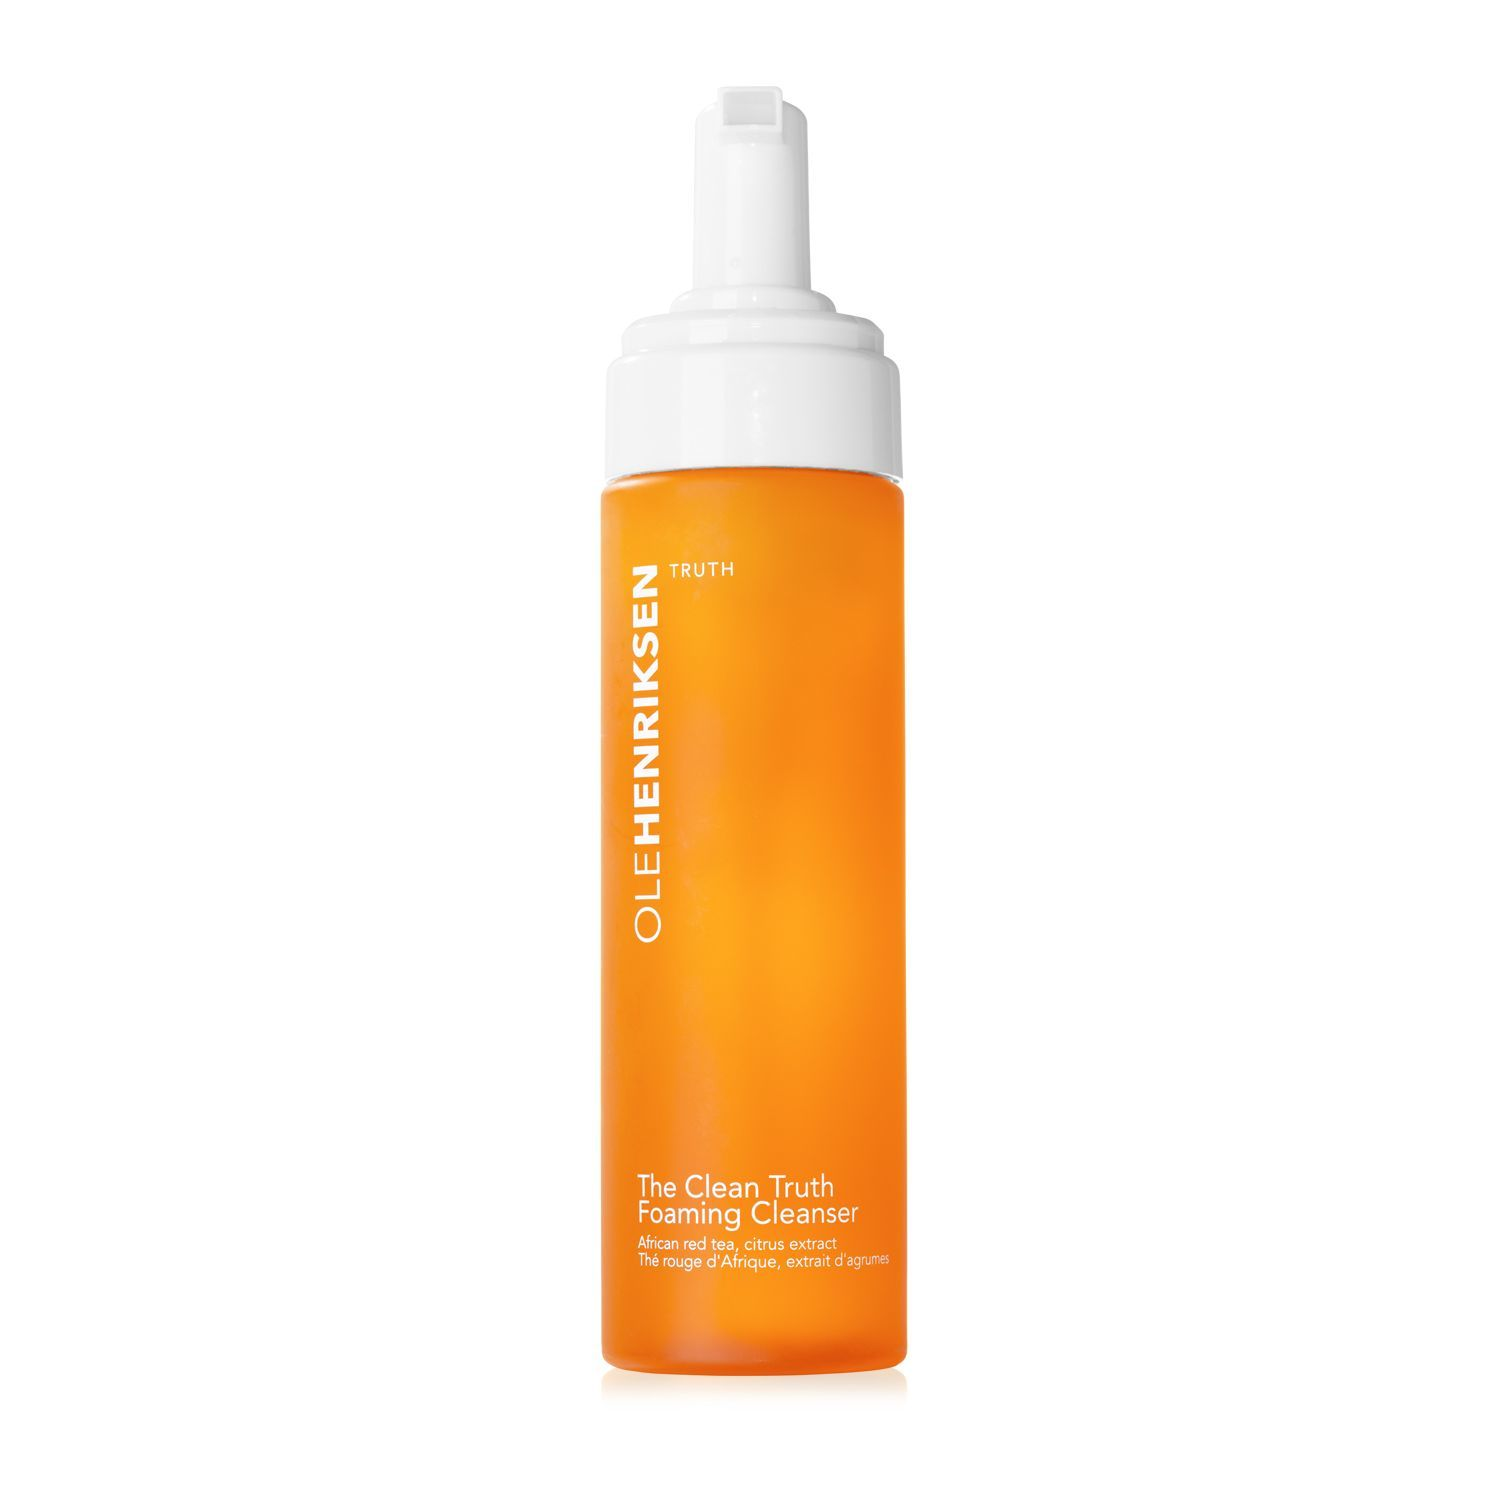 Ole Henriksen The Clean Truth Foaming Cleanser.jpg